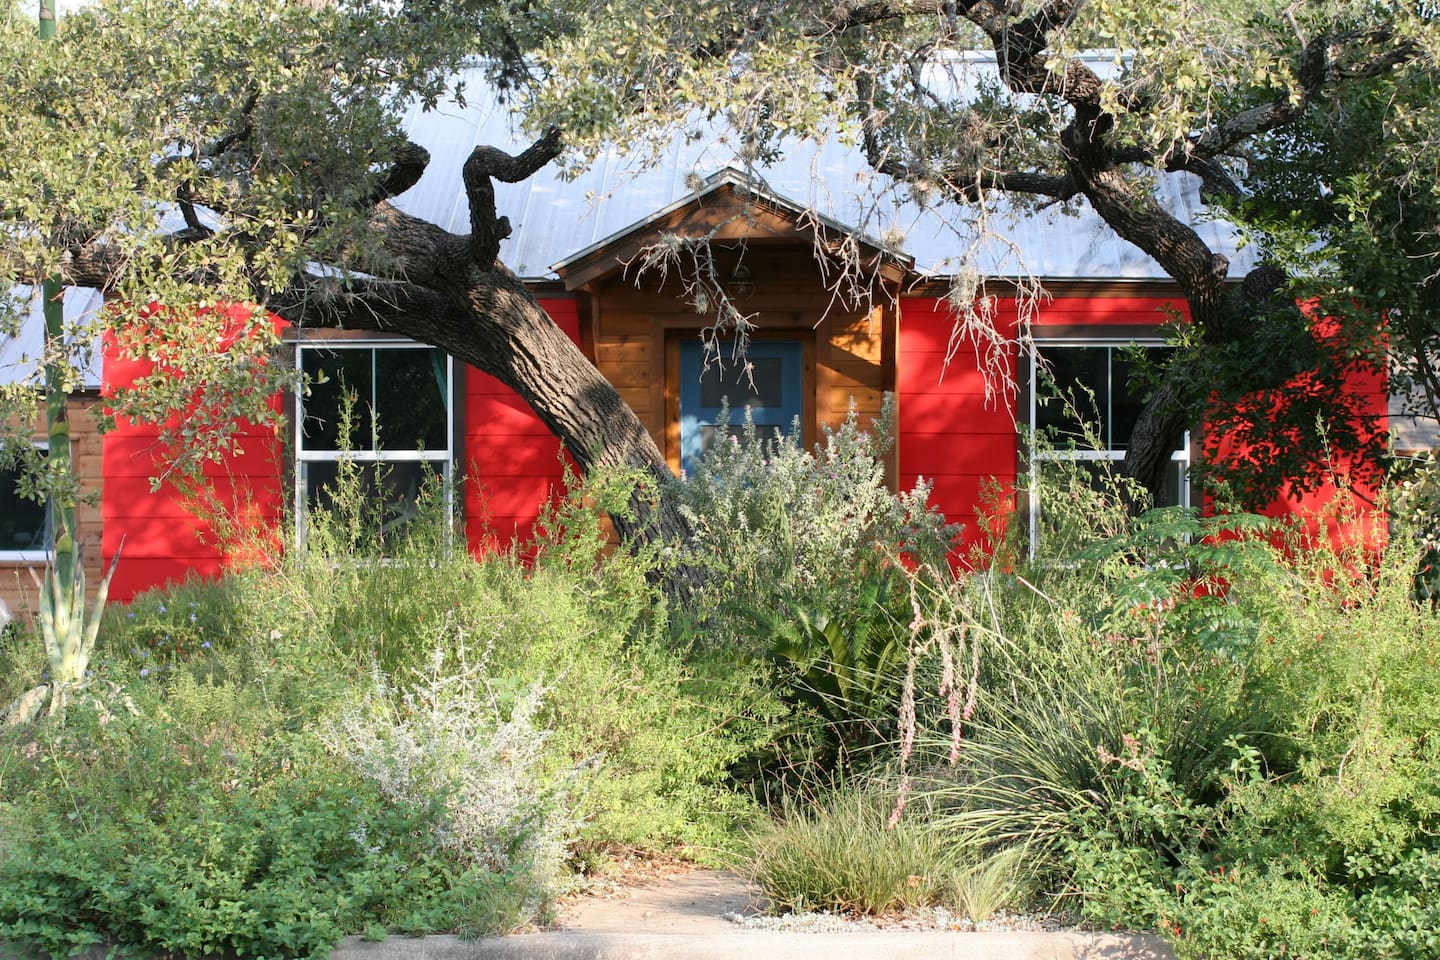 Wild, native garden covers the front lawn of our colorful, South Austin abode.